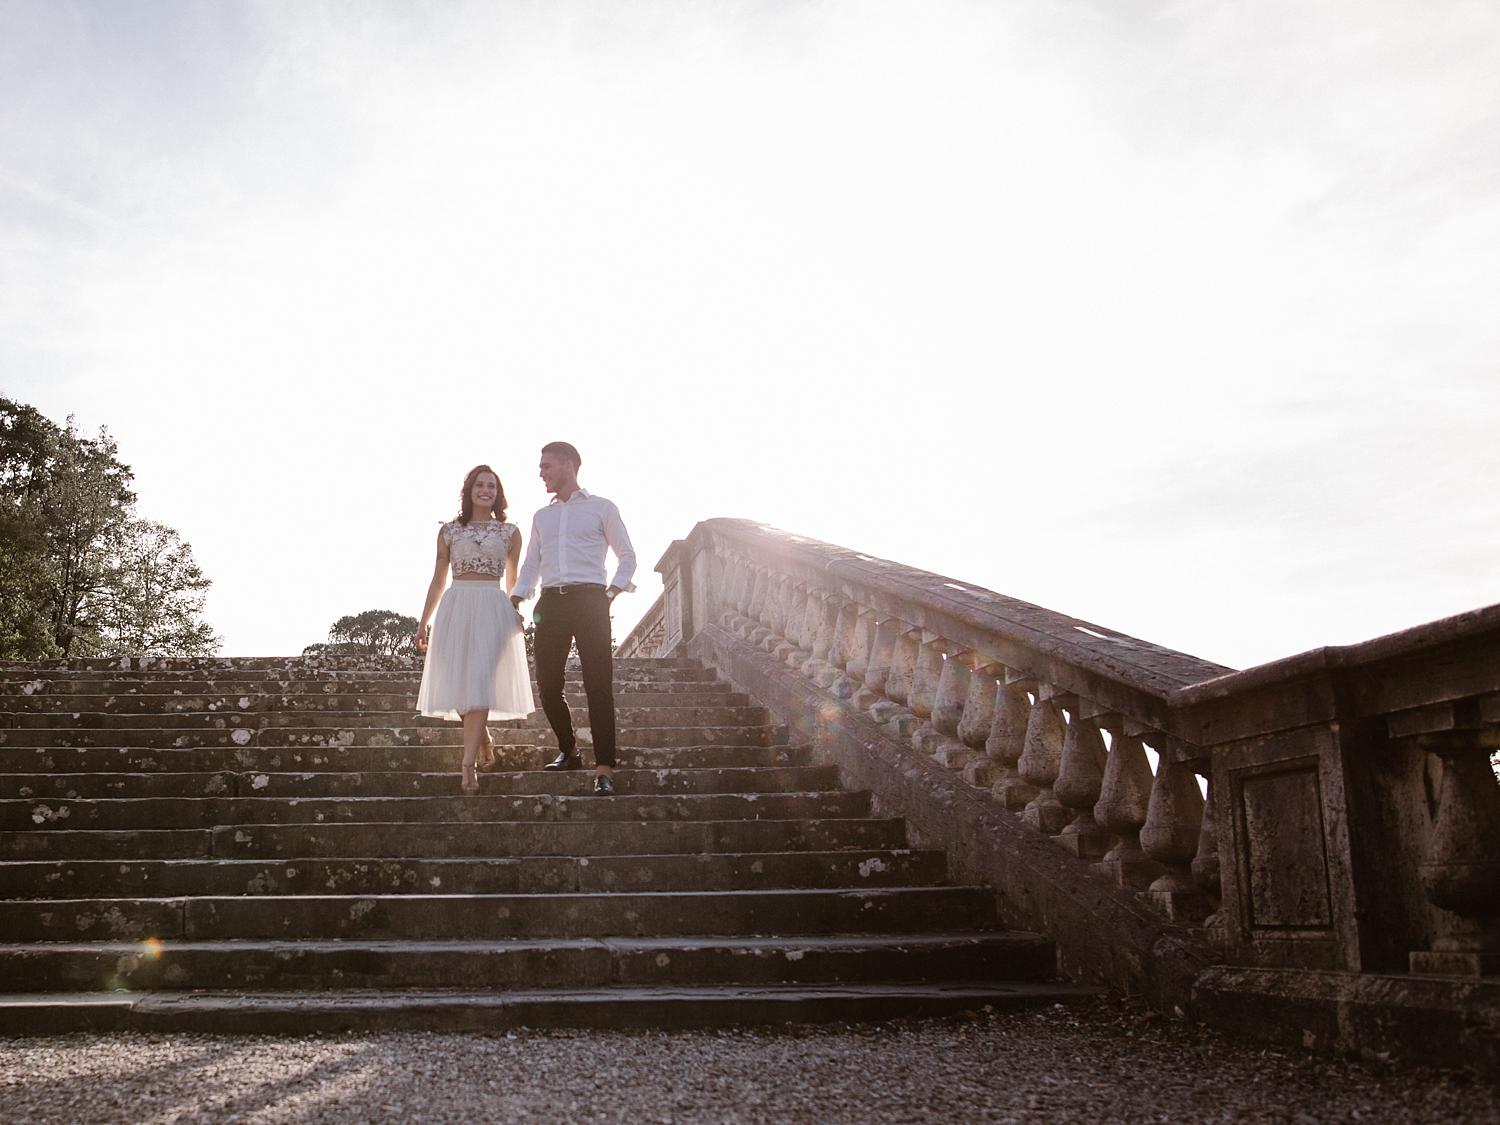 weddingphotographer florence 38 1 - Maddalena & Arturo - A Chic Anniversary Session in Florence